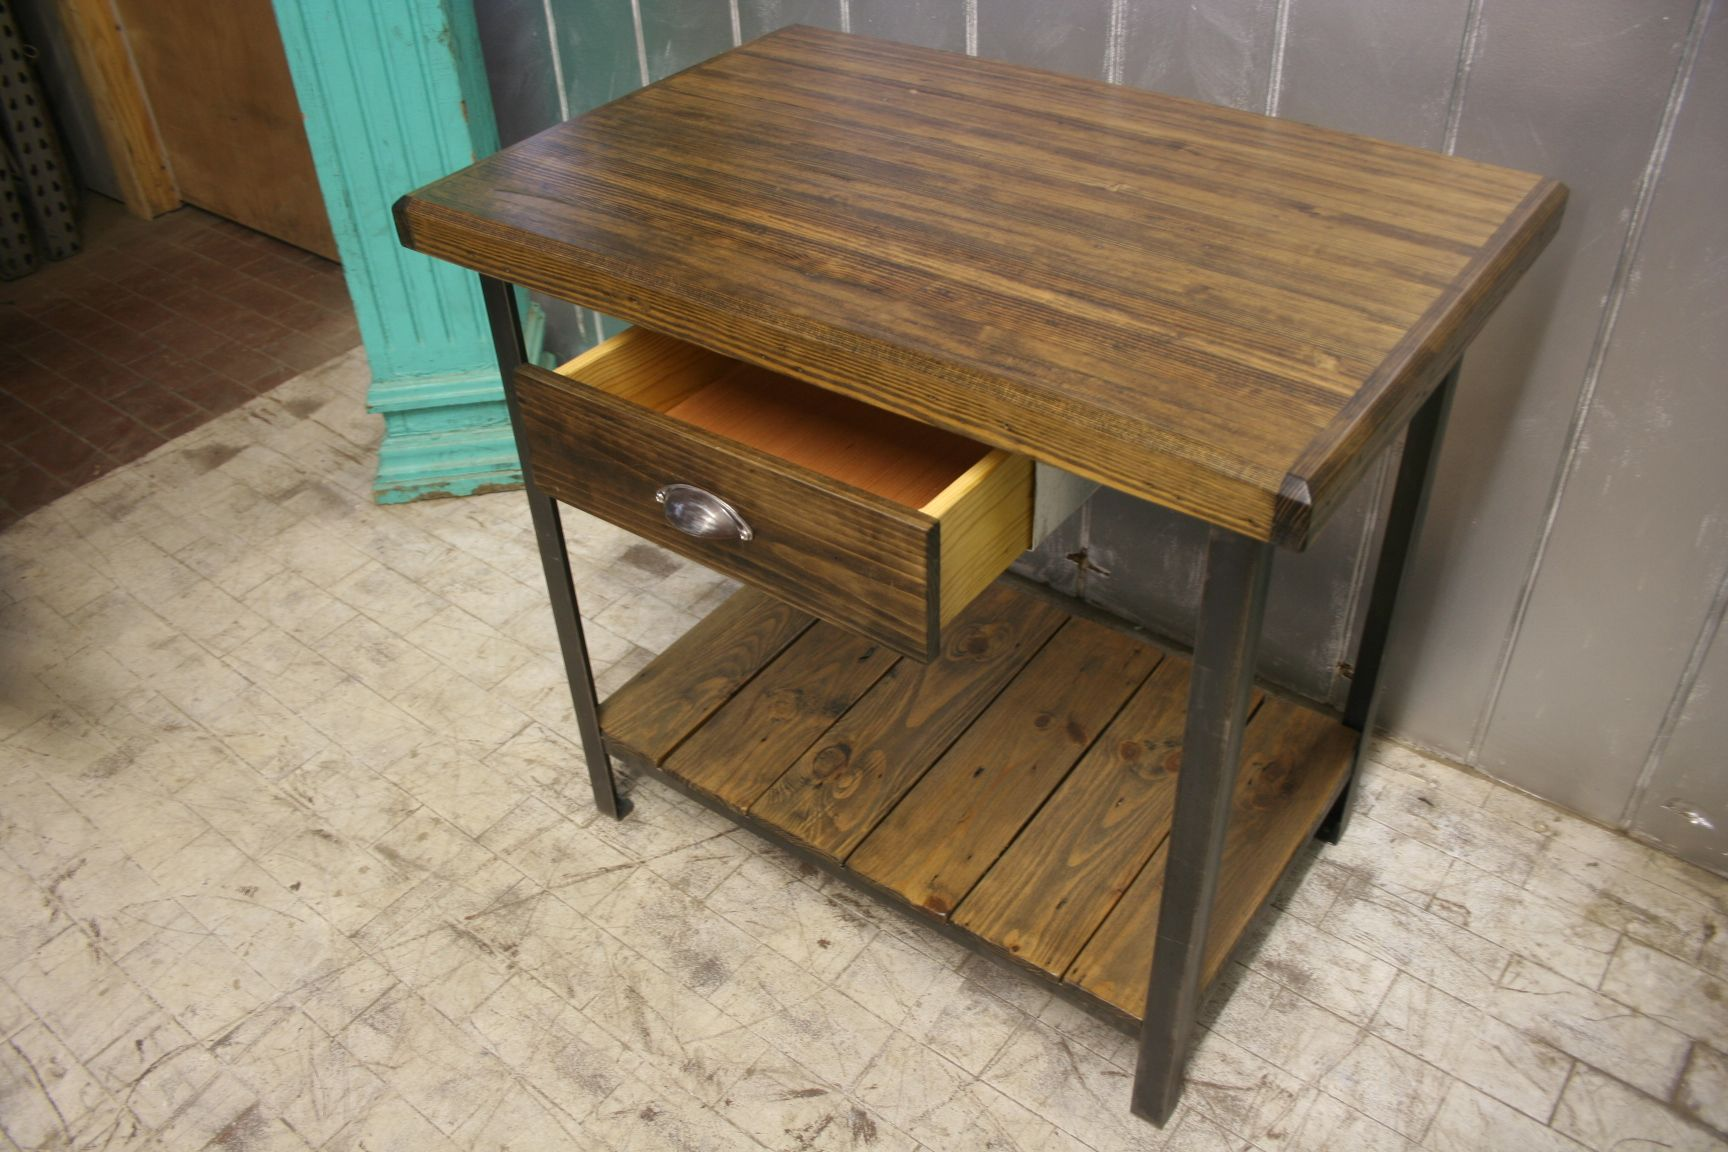 Kitchen Island 30 X 24 buy a hand made reclaimed wood industrial kitchen island, made to